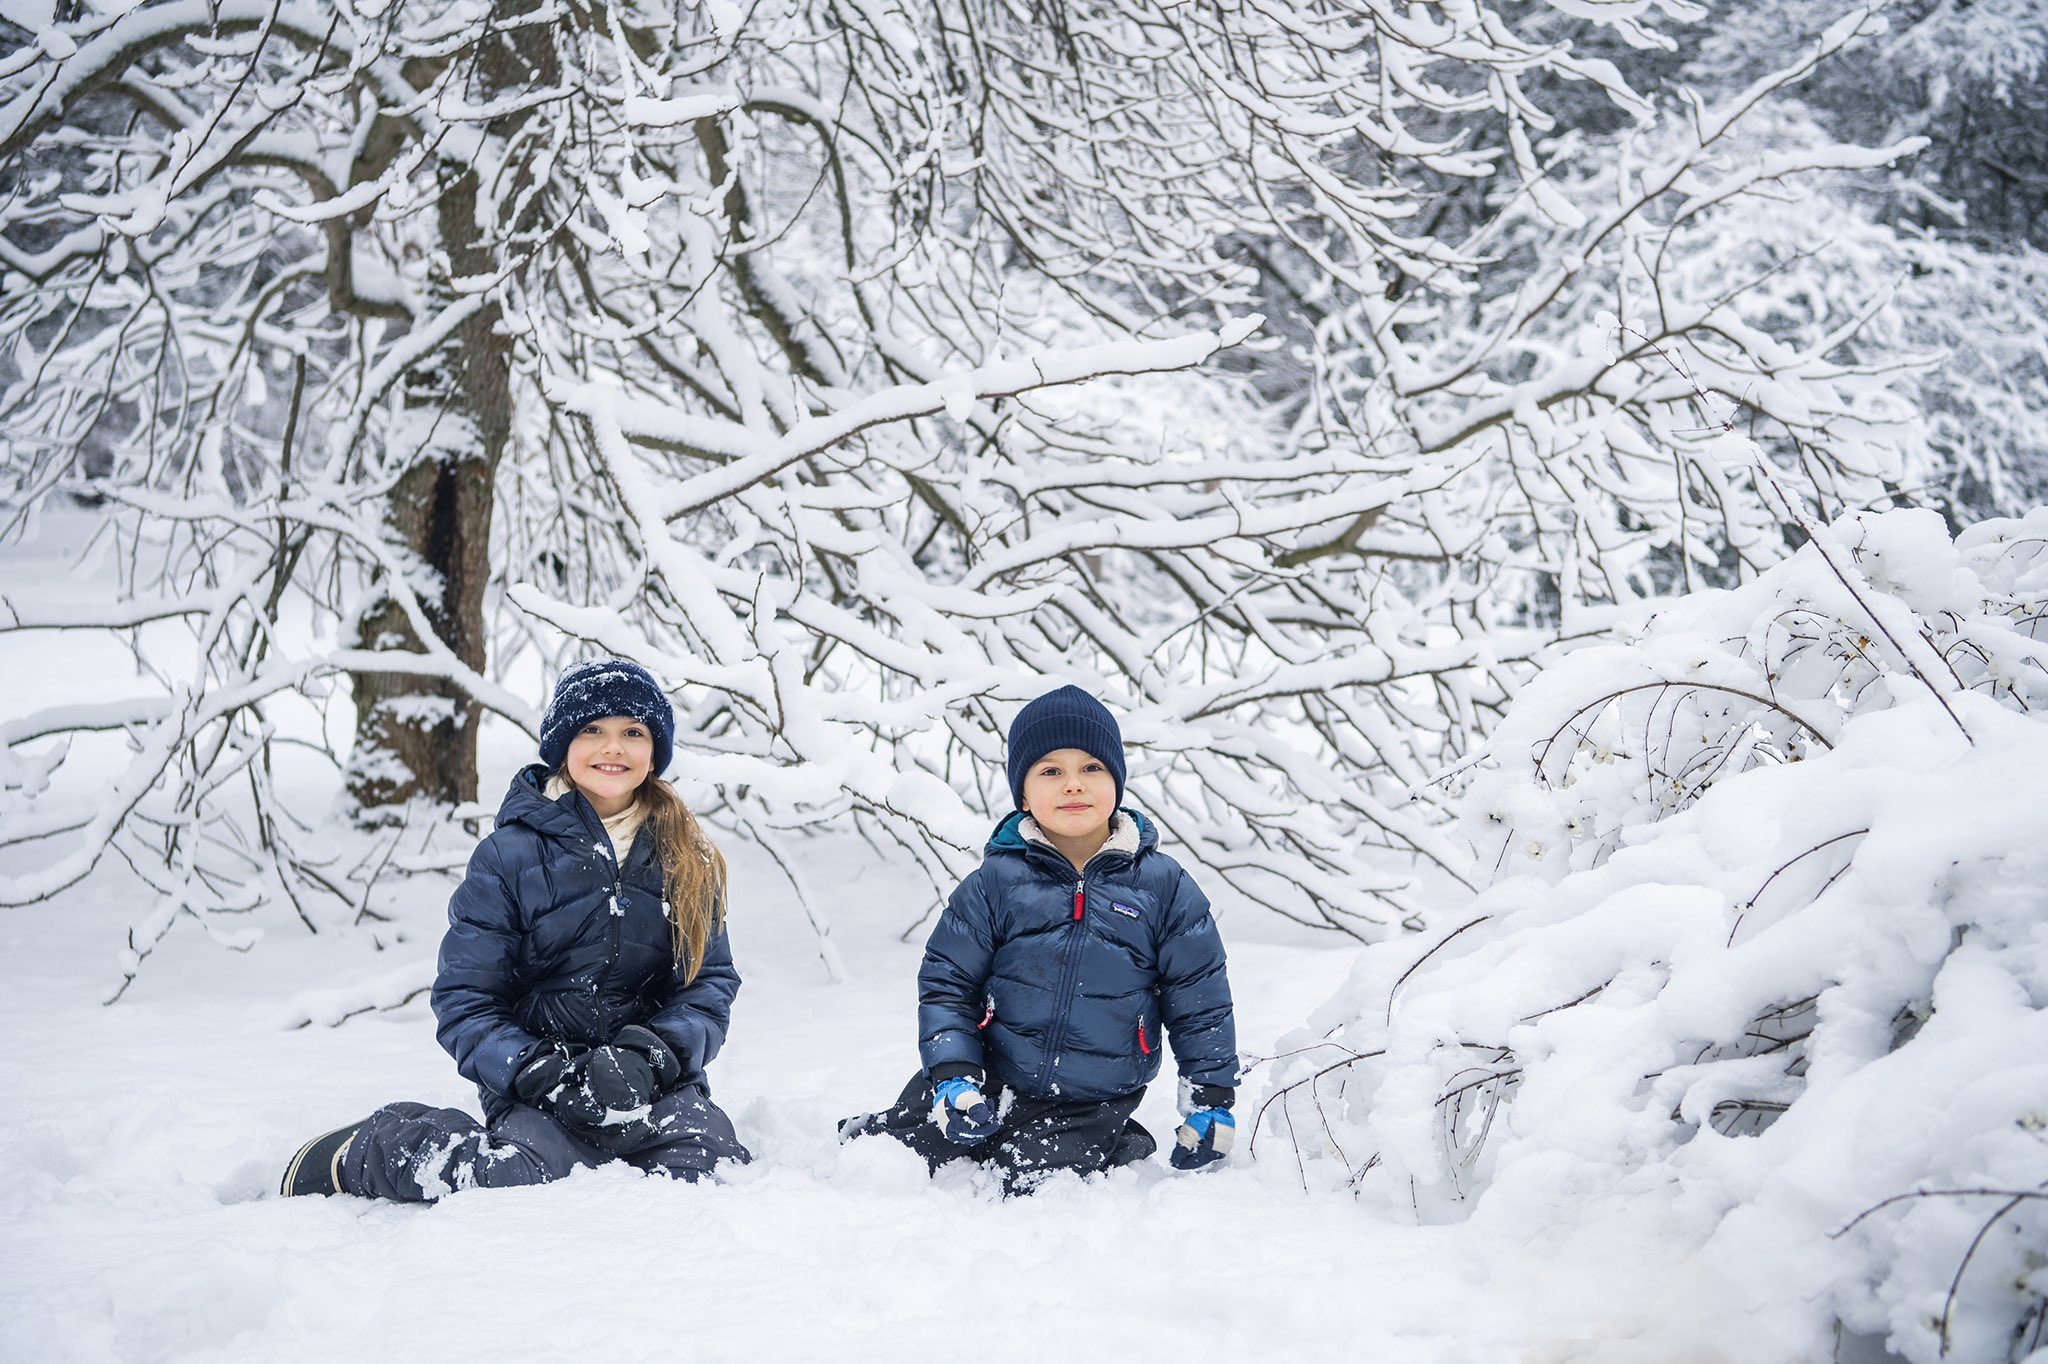 Sweden Crown Princess Victoria and Prince Daniel shared new pictures to mark the 5th birthday of Prince Oscar